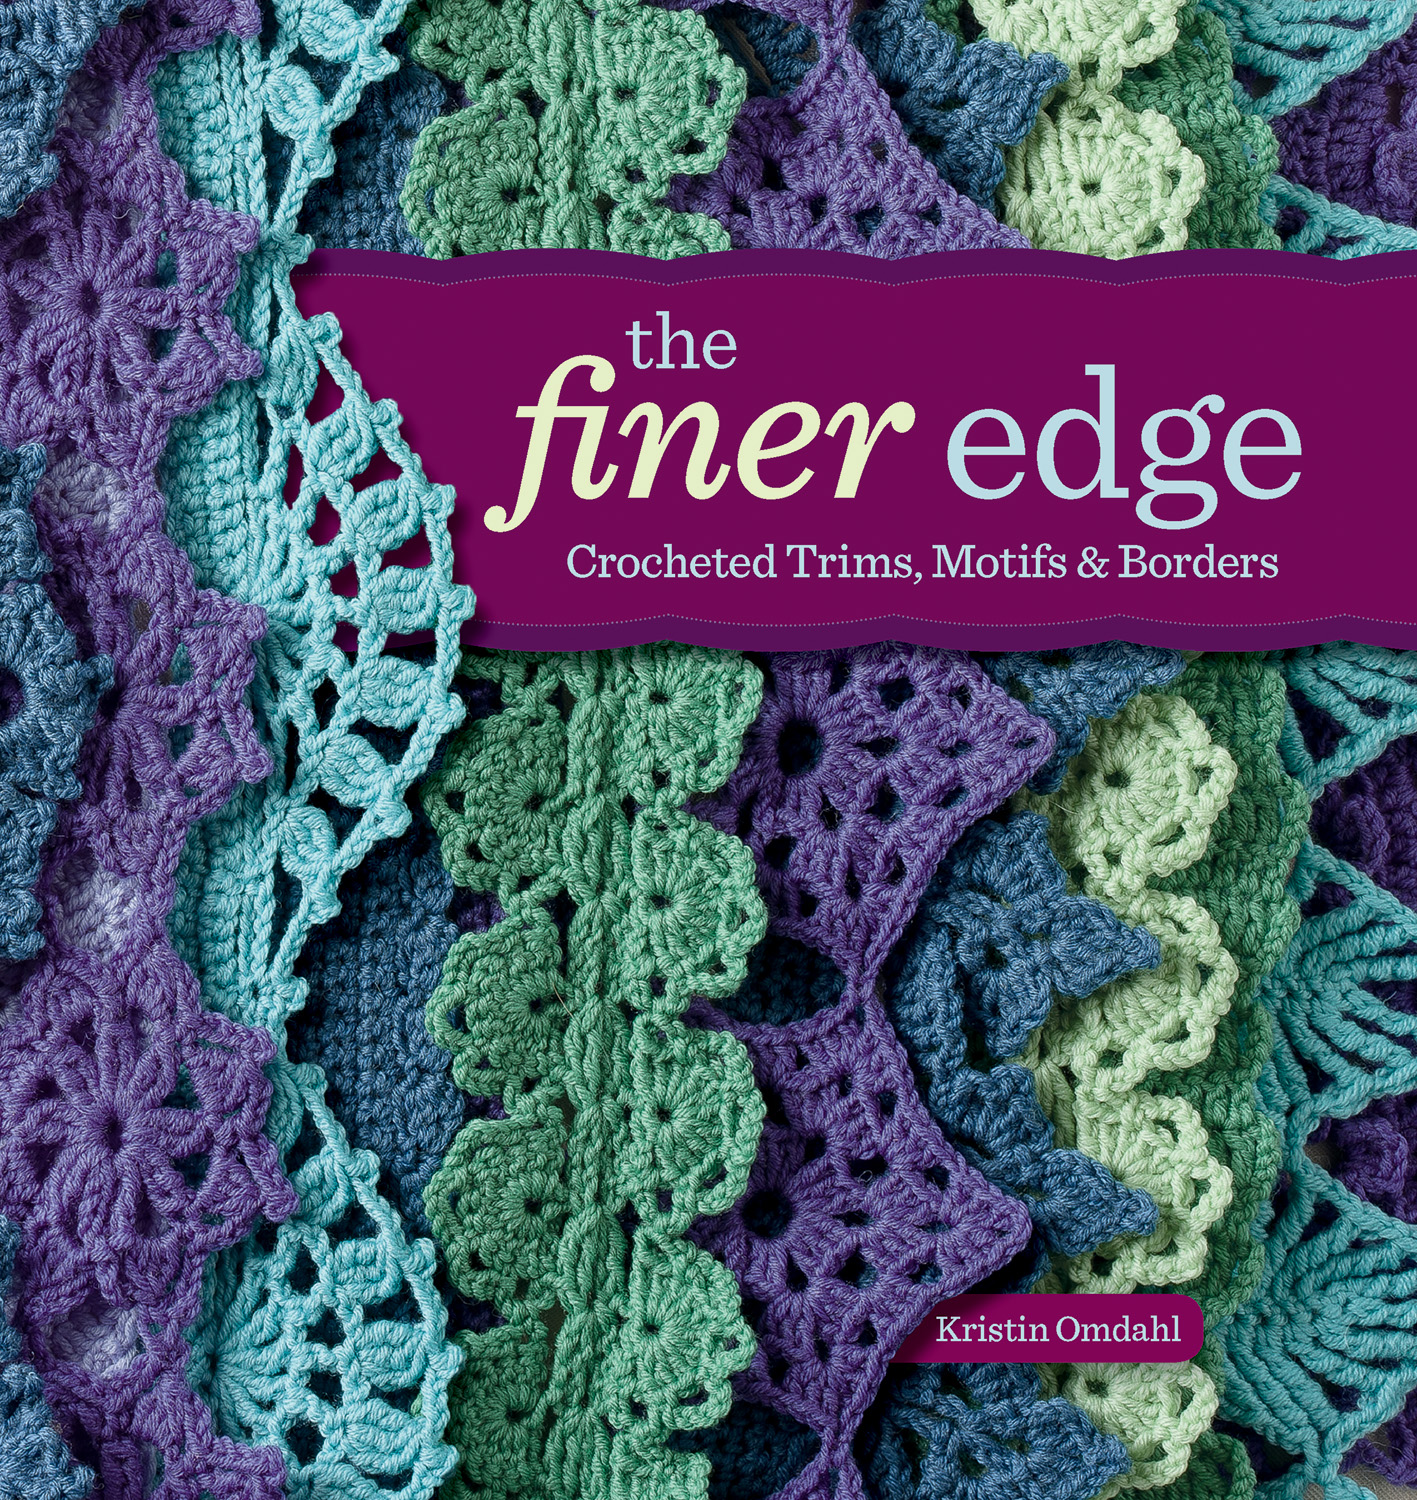 Knitting With Beads Book : The crochet doctor™